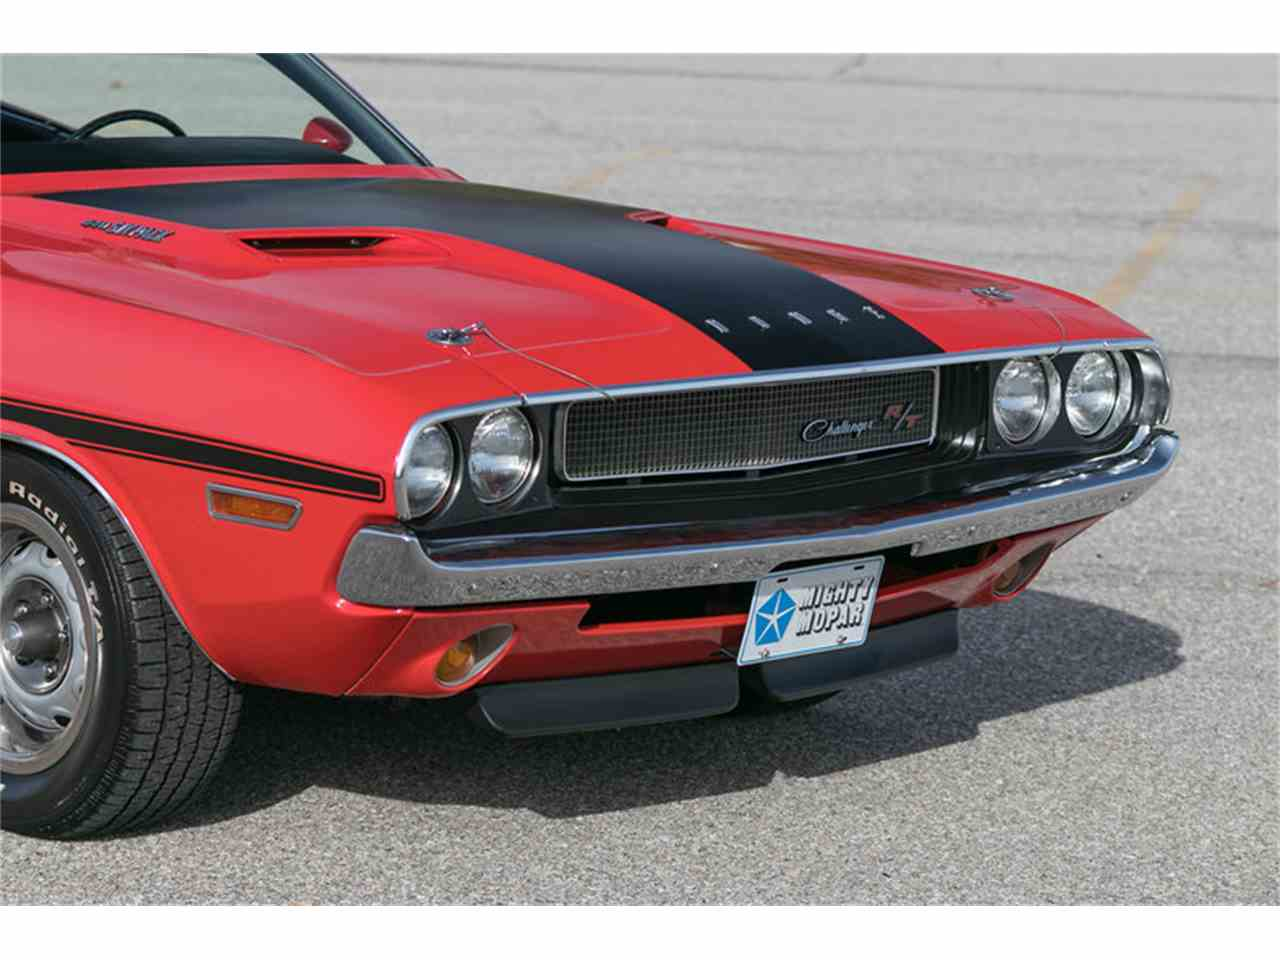 Large Picture of Classic '70 Challenger R/T located in St. Charles Missouri - $89,995.00 Offered by Fast Lane Classic Cars Inc. - MF41